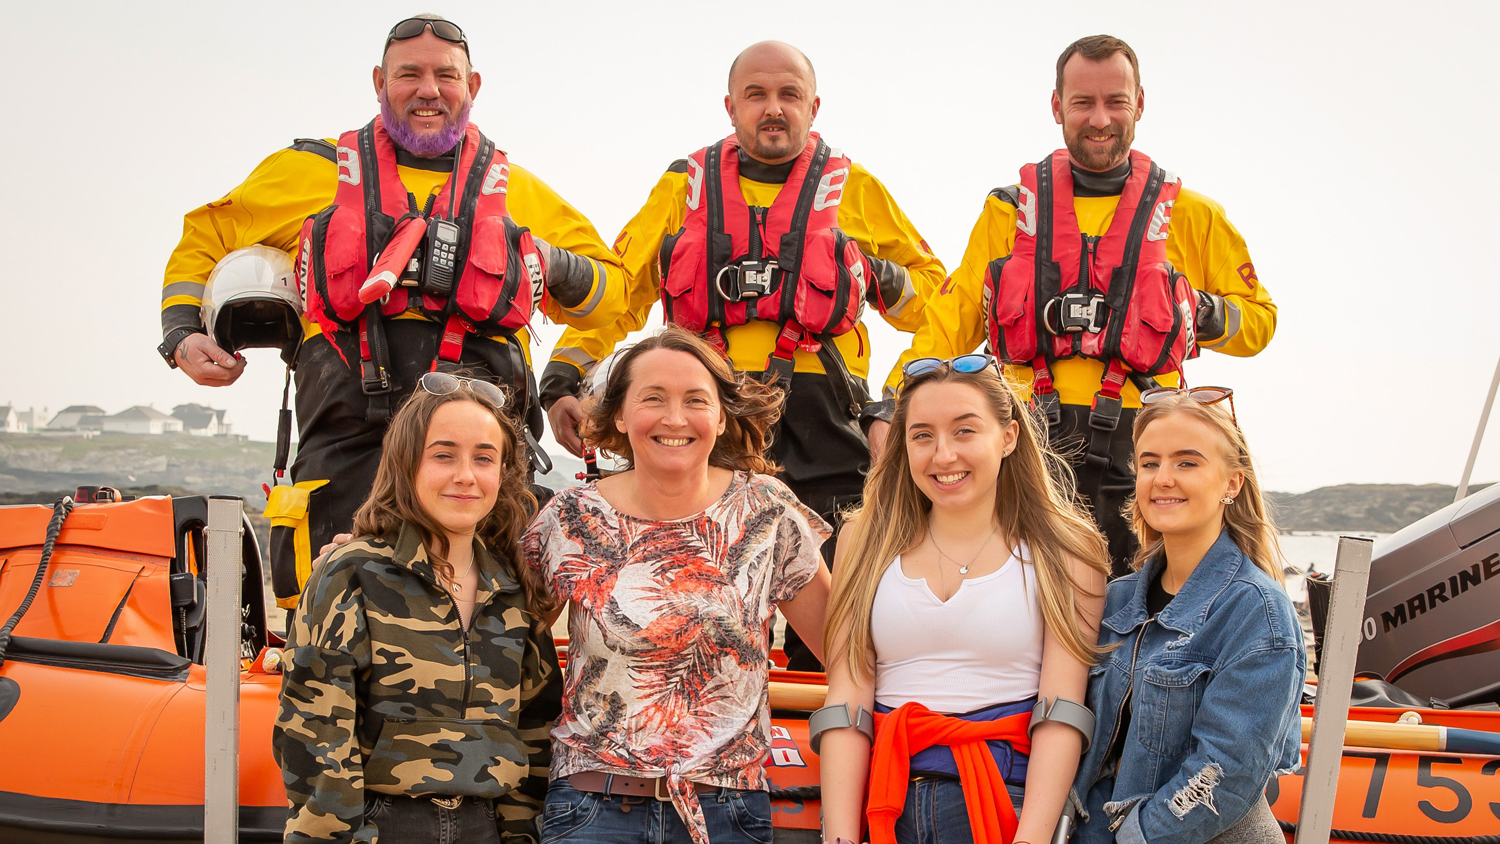 Kayakers Katie, Julie, Megan and Rachel with three of their Trearddur Bay RNLI rescuers - Helm Daf Griffiths and Crew Members Steve Williams and Tom Kearney